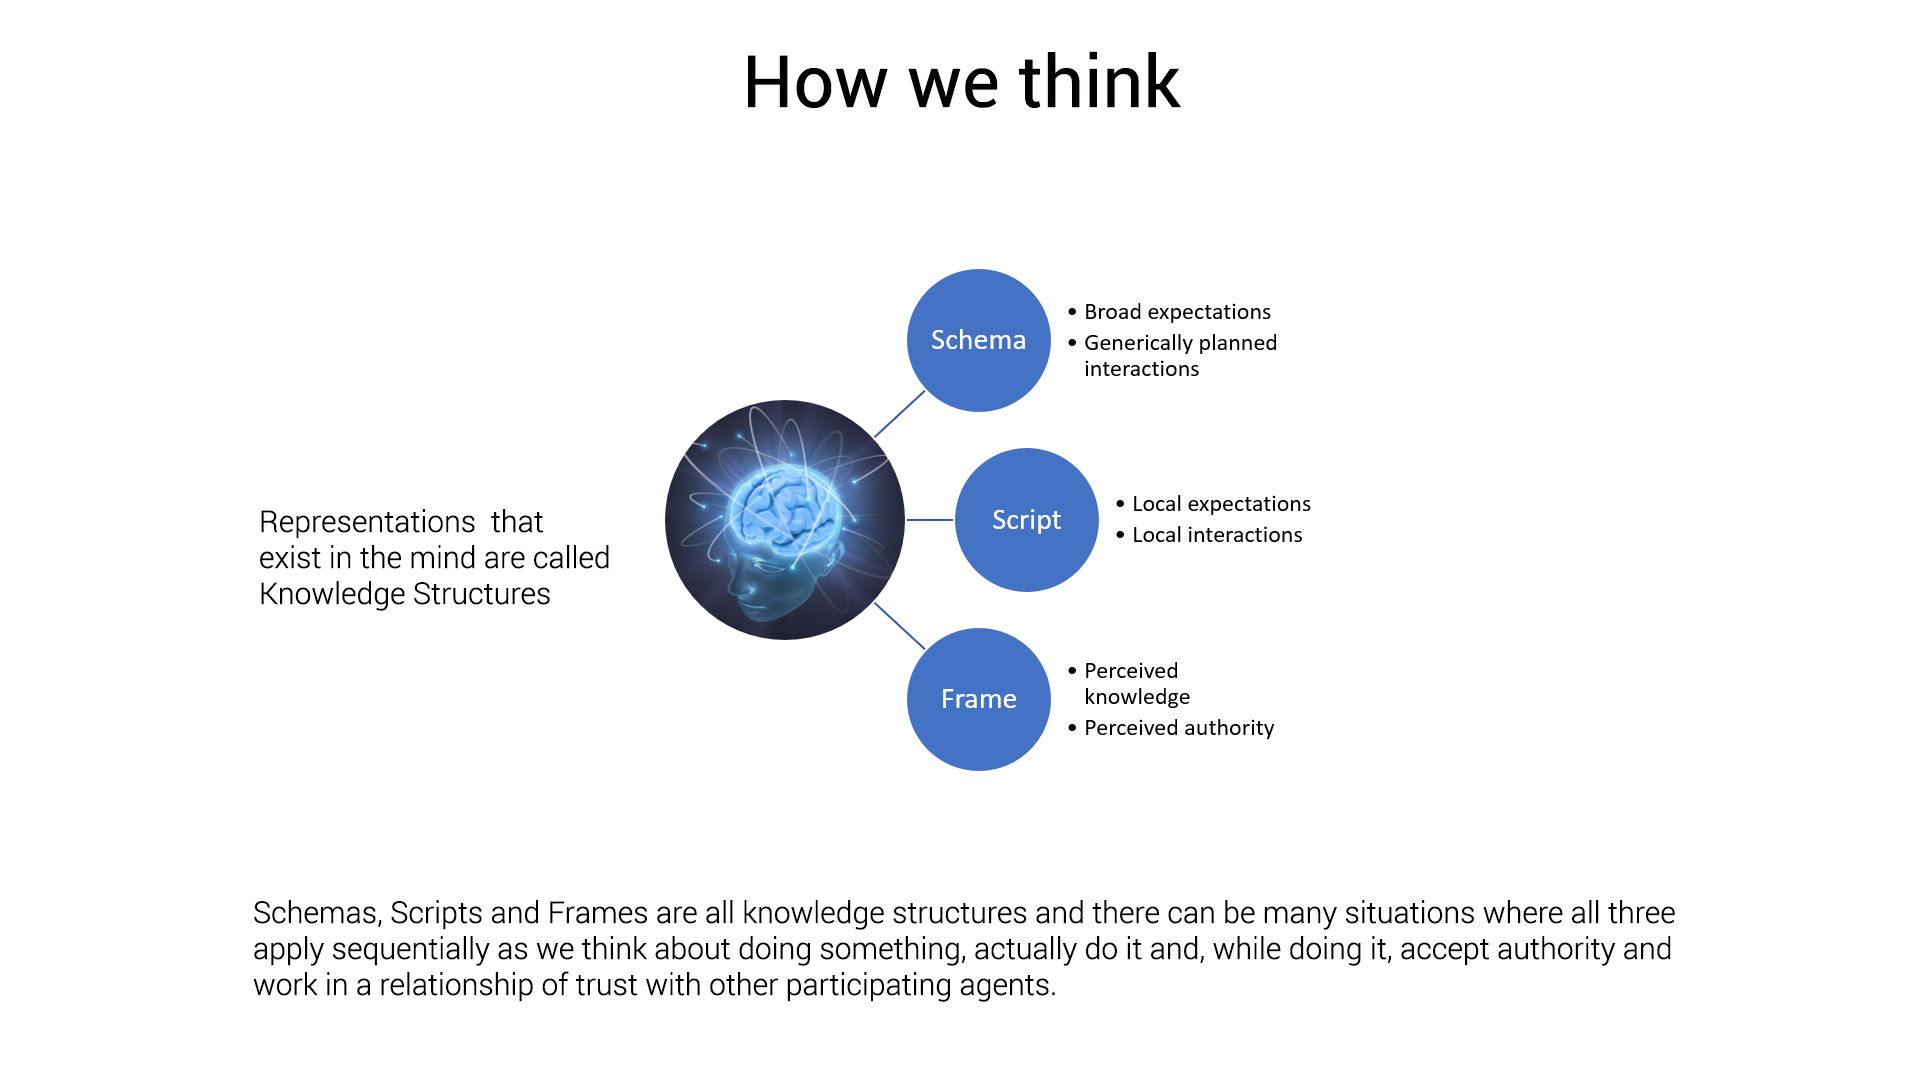 How we think - a three step approach to mentalizing